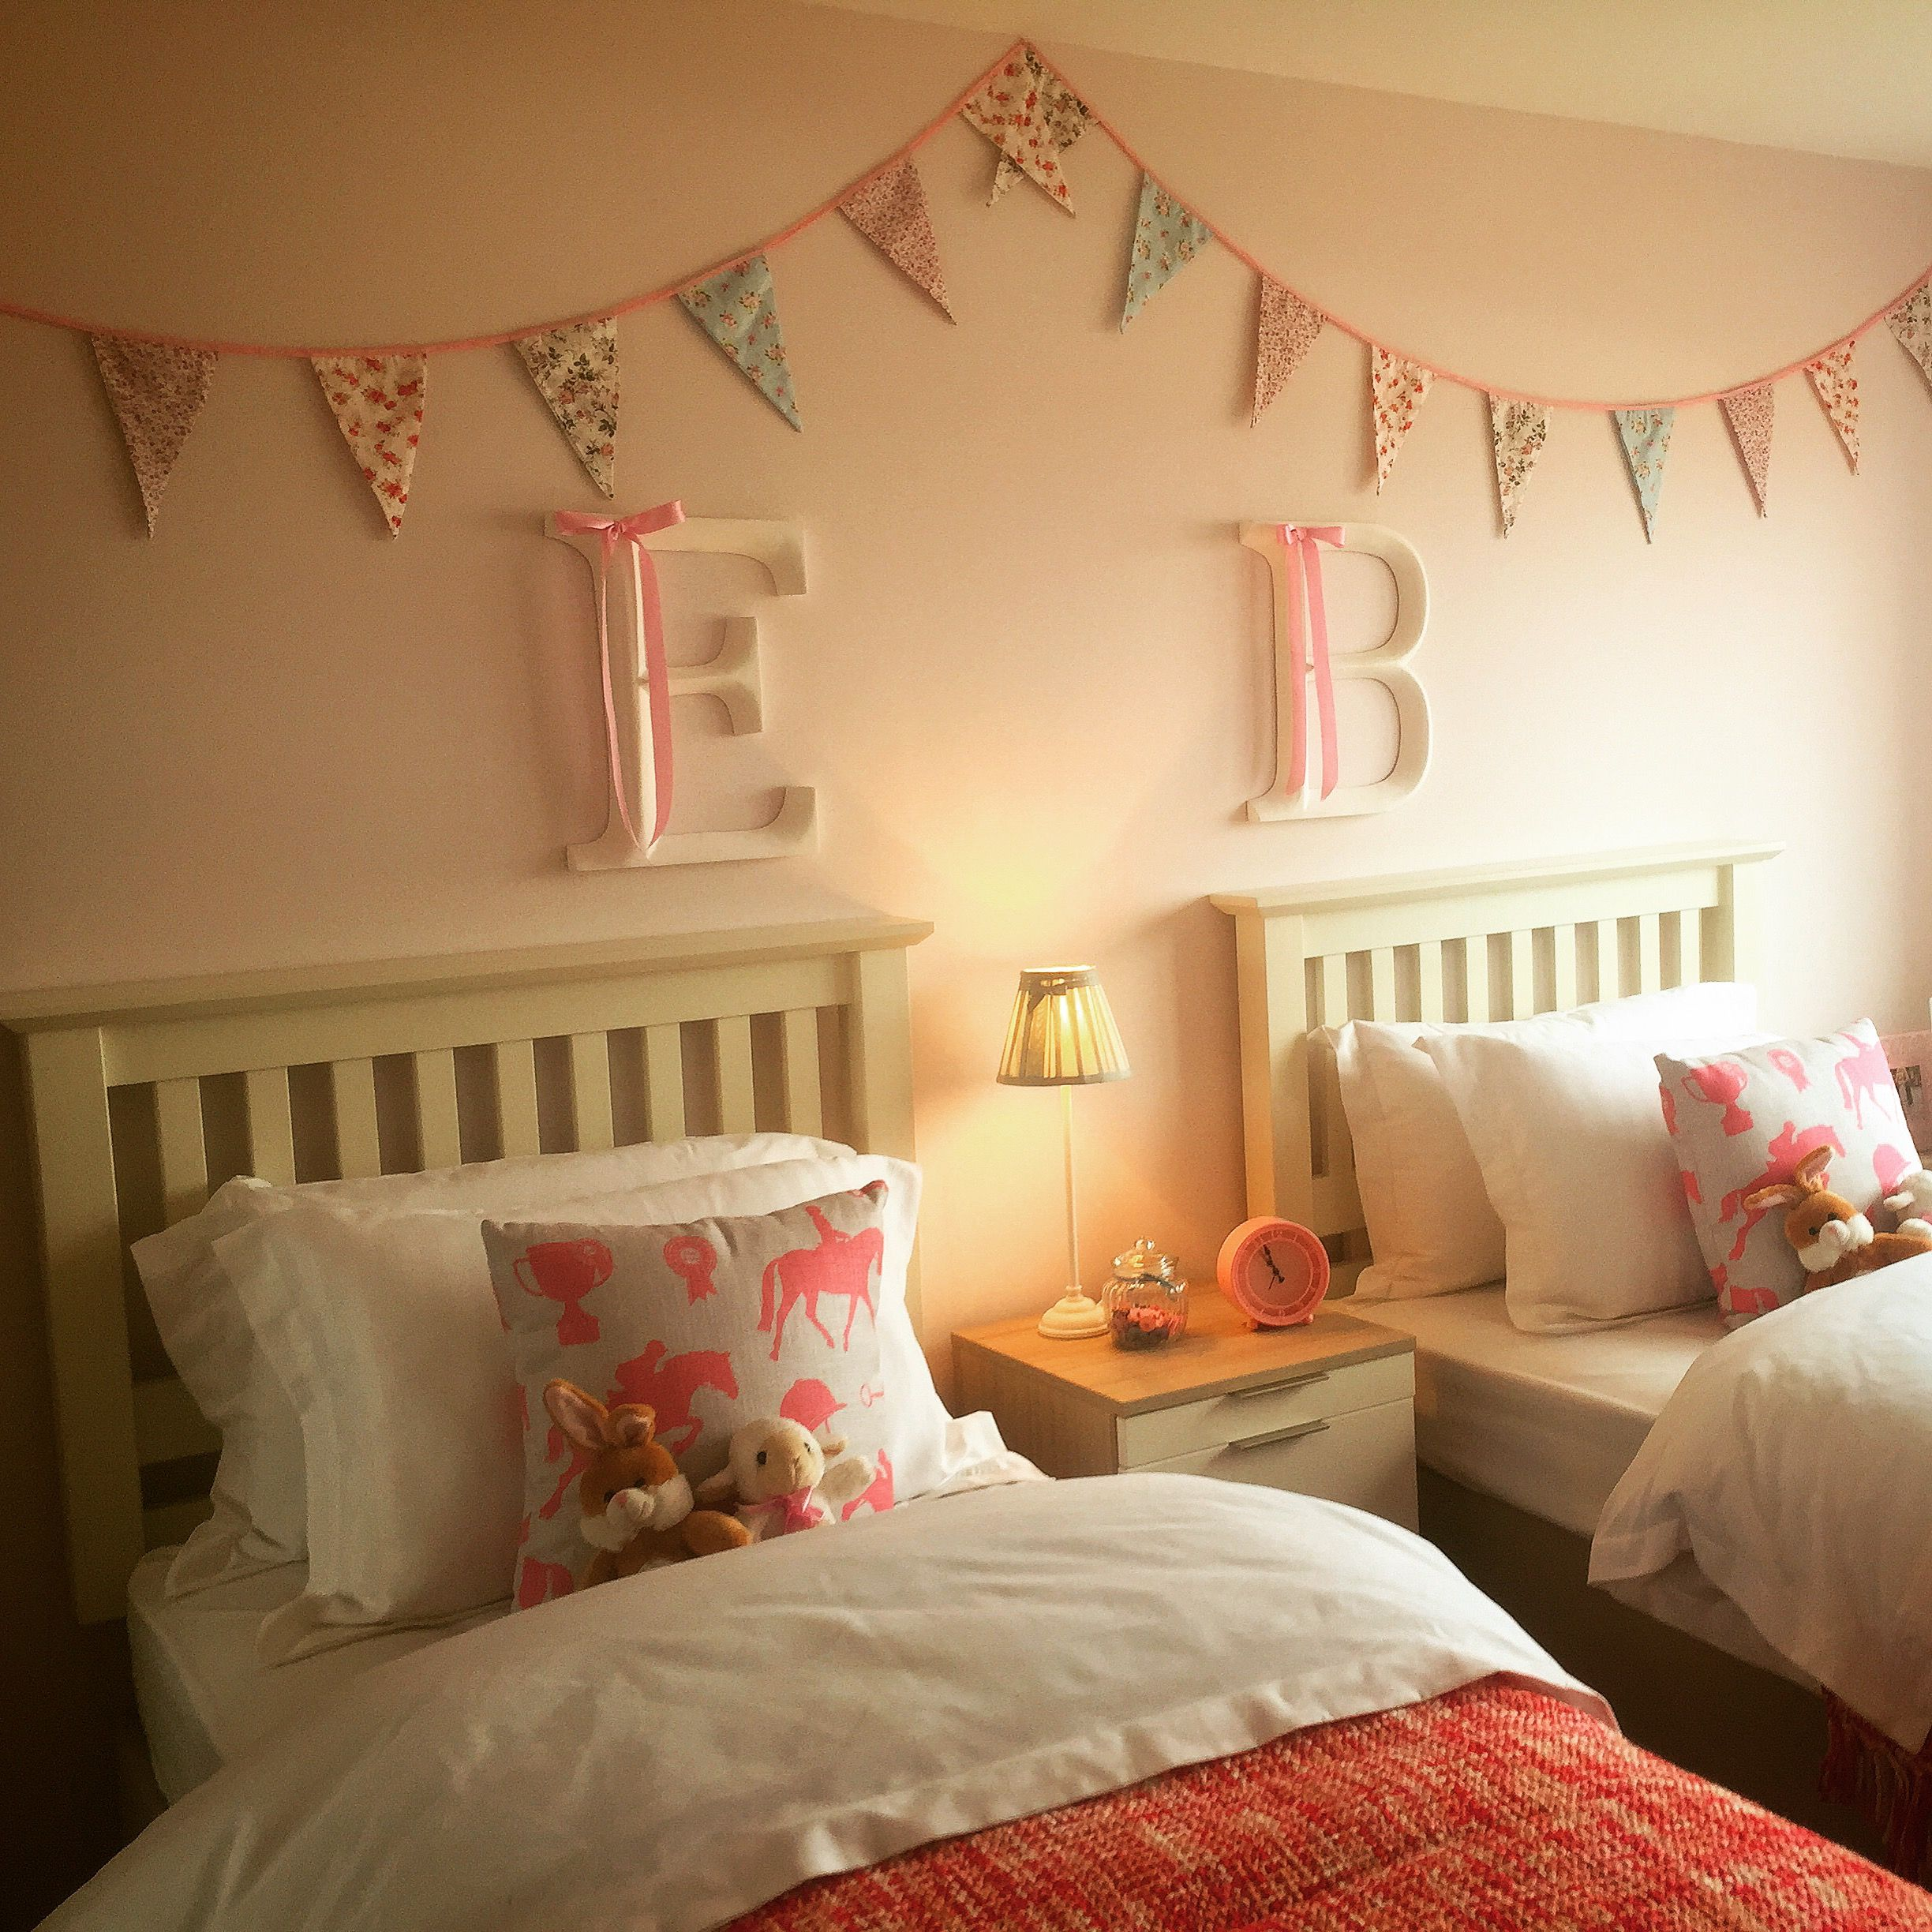 Interior Twin Girls Bedroom Ideas beautiful twin girls bedroom bunting oversized letters and colourful bedding veryme